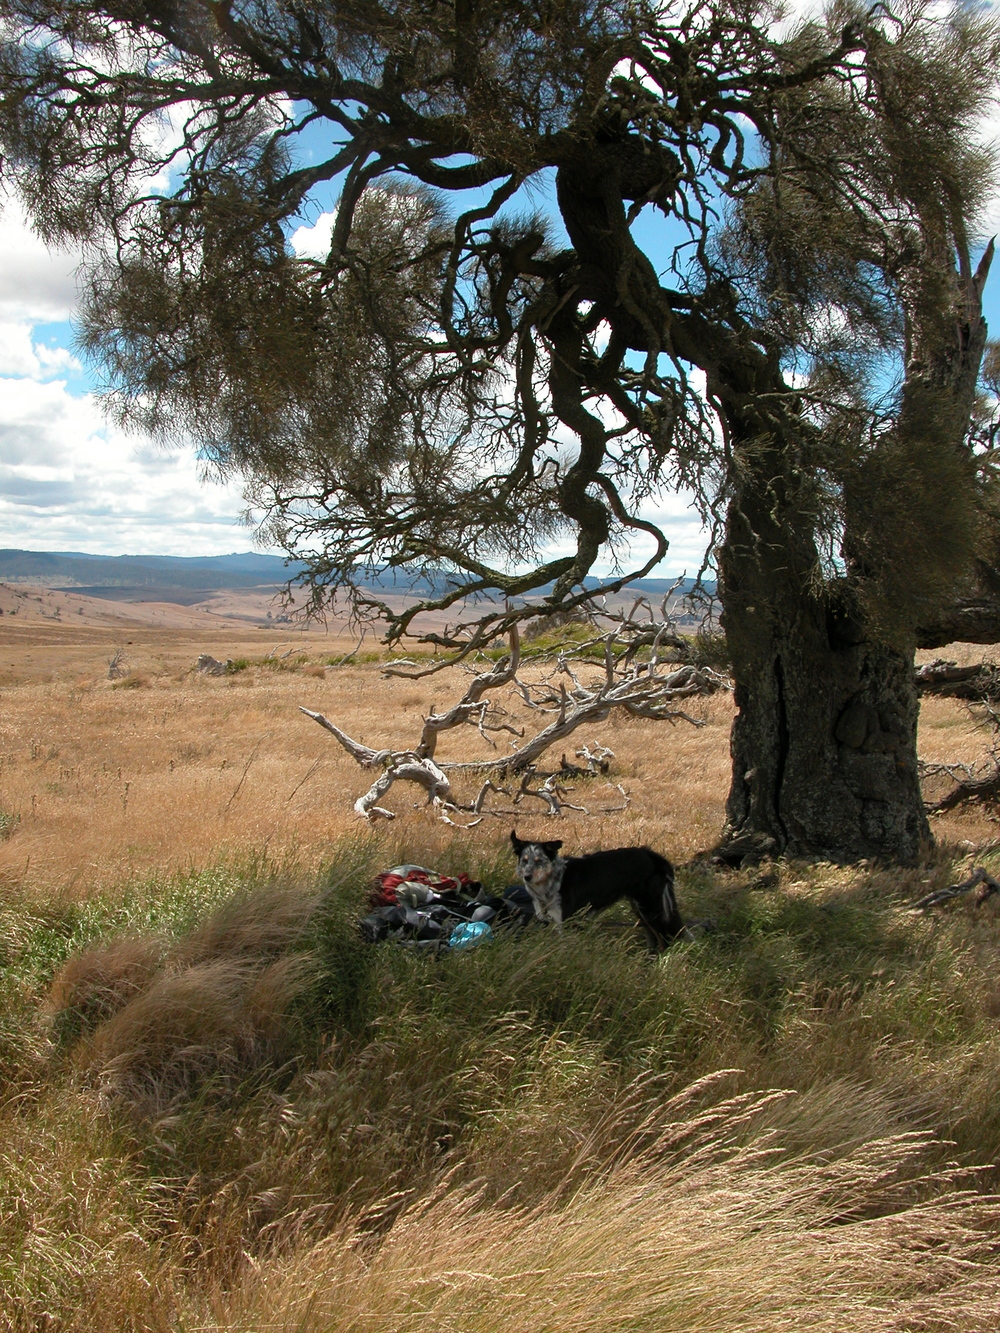 Mid-day rest spot for Pearl and me, under a wonderfully gnarled, windswept she-oak (casuarina). It was shady, and we could watch the sheep at their mid-day rest, but very windy at the top of the hill, as you can see from Pearl's flying ears!